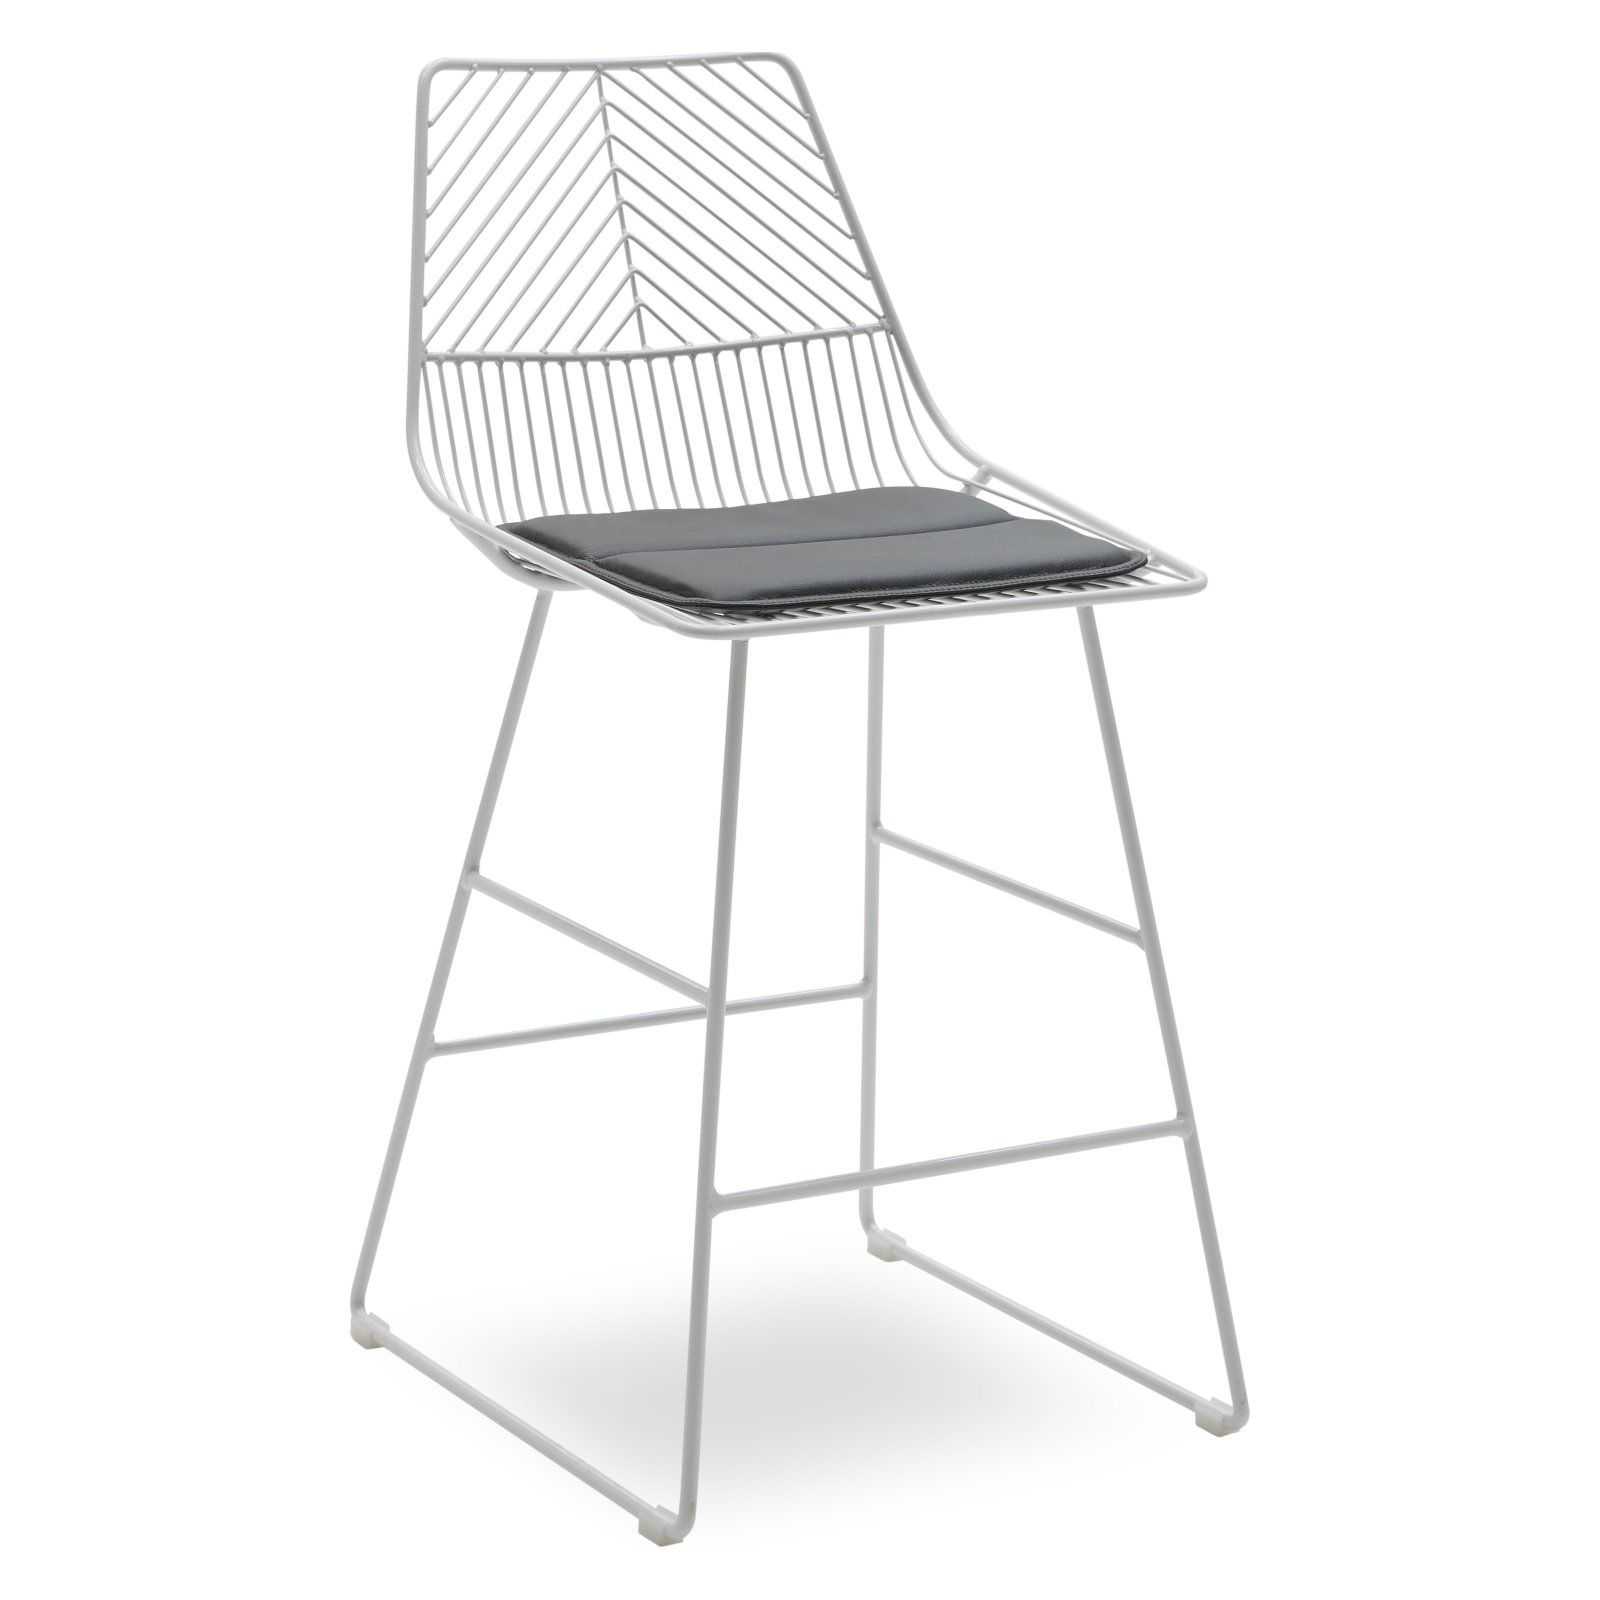 Modrn Scandinavian Metal Counter Stool With Cushion White Gray